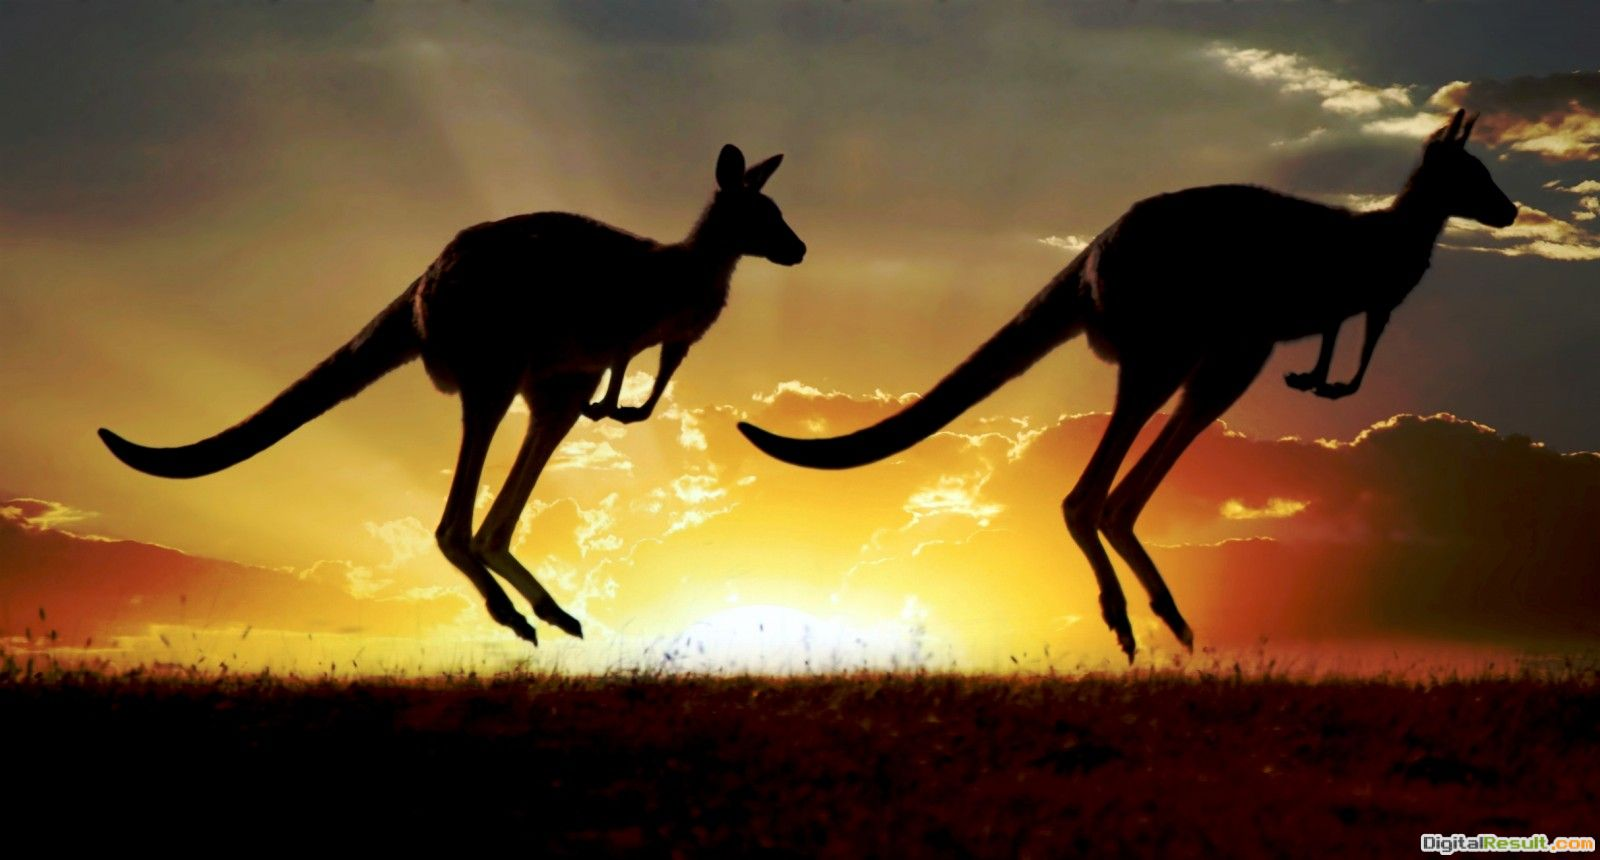 Kangaroo Sunset Jumping Hd1600x860 pixelNature HD Wallpaper #31309 1073